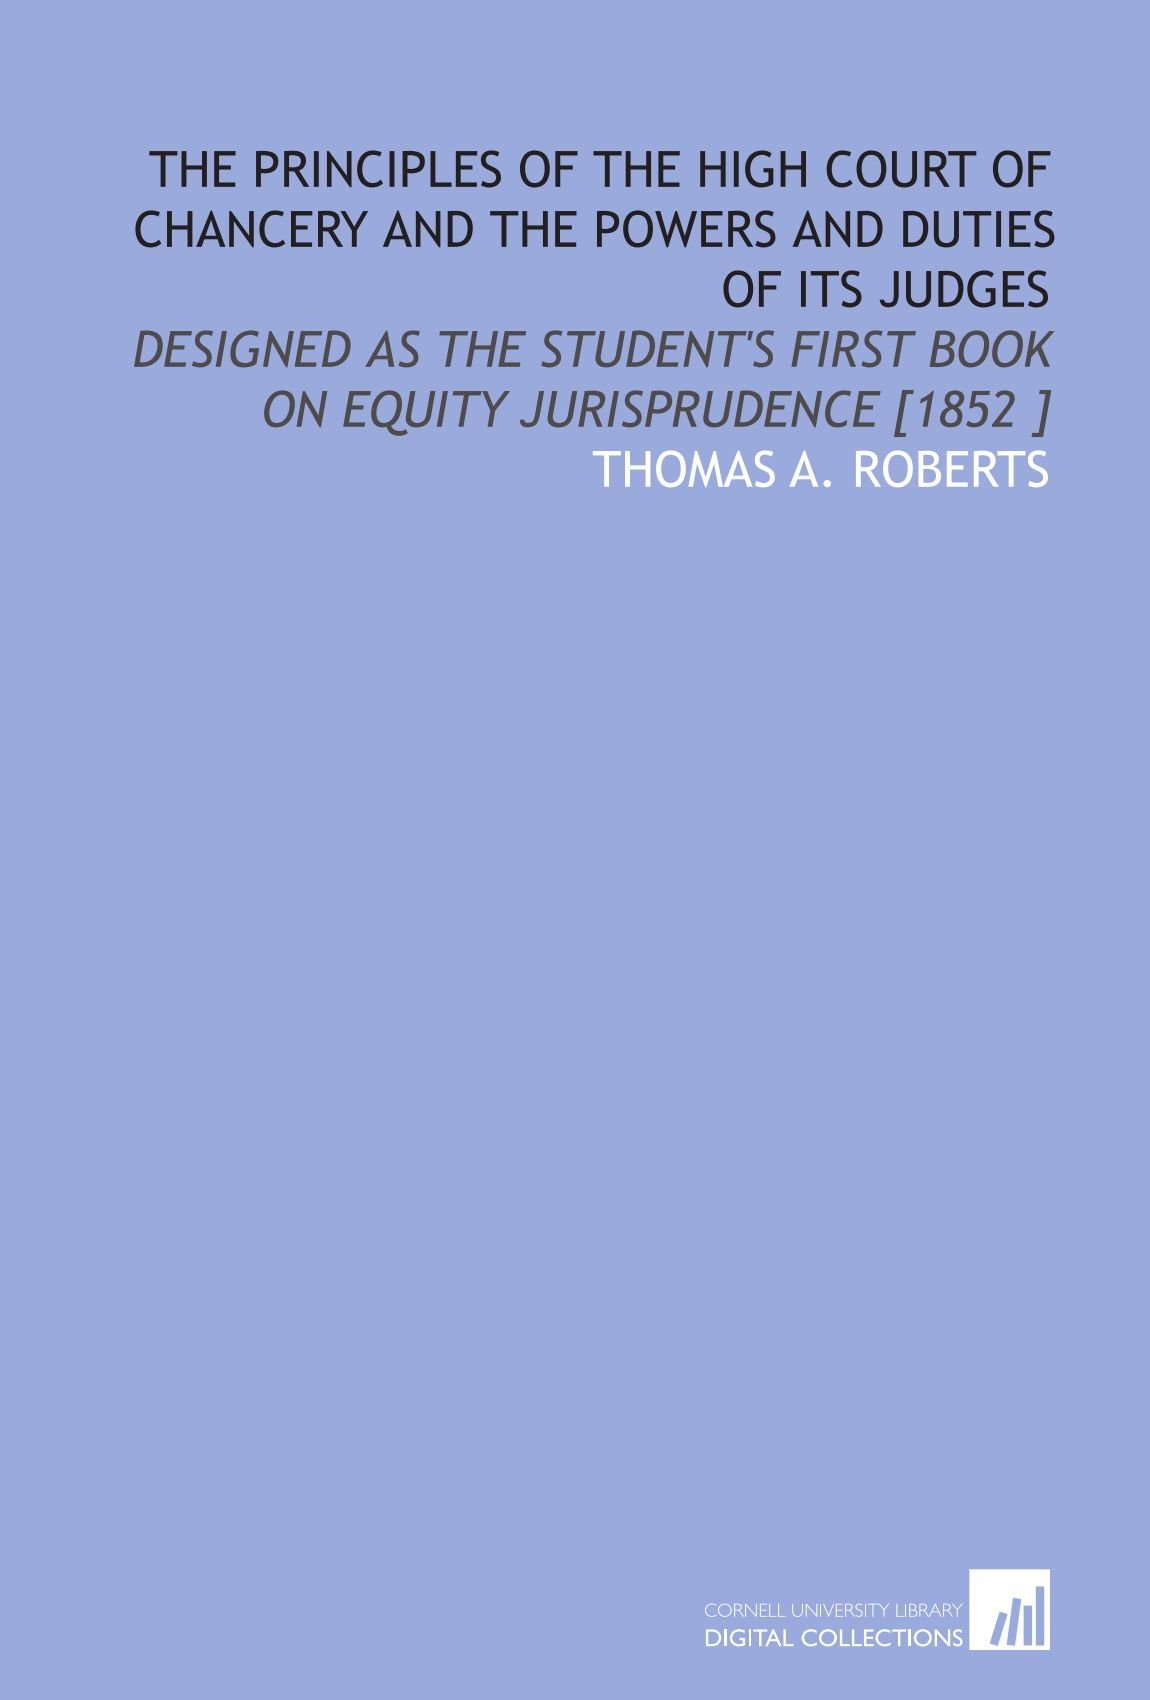 Download The Principles of the High Court of Chancery and the Powers and Duties of Its Judges: Designed as the Student's First Book on Equity Jurisprudence [1852 ] ebook